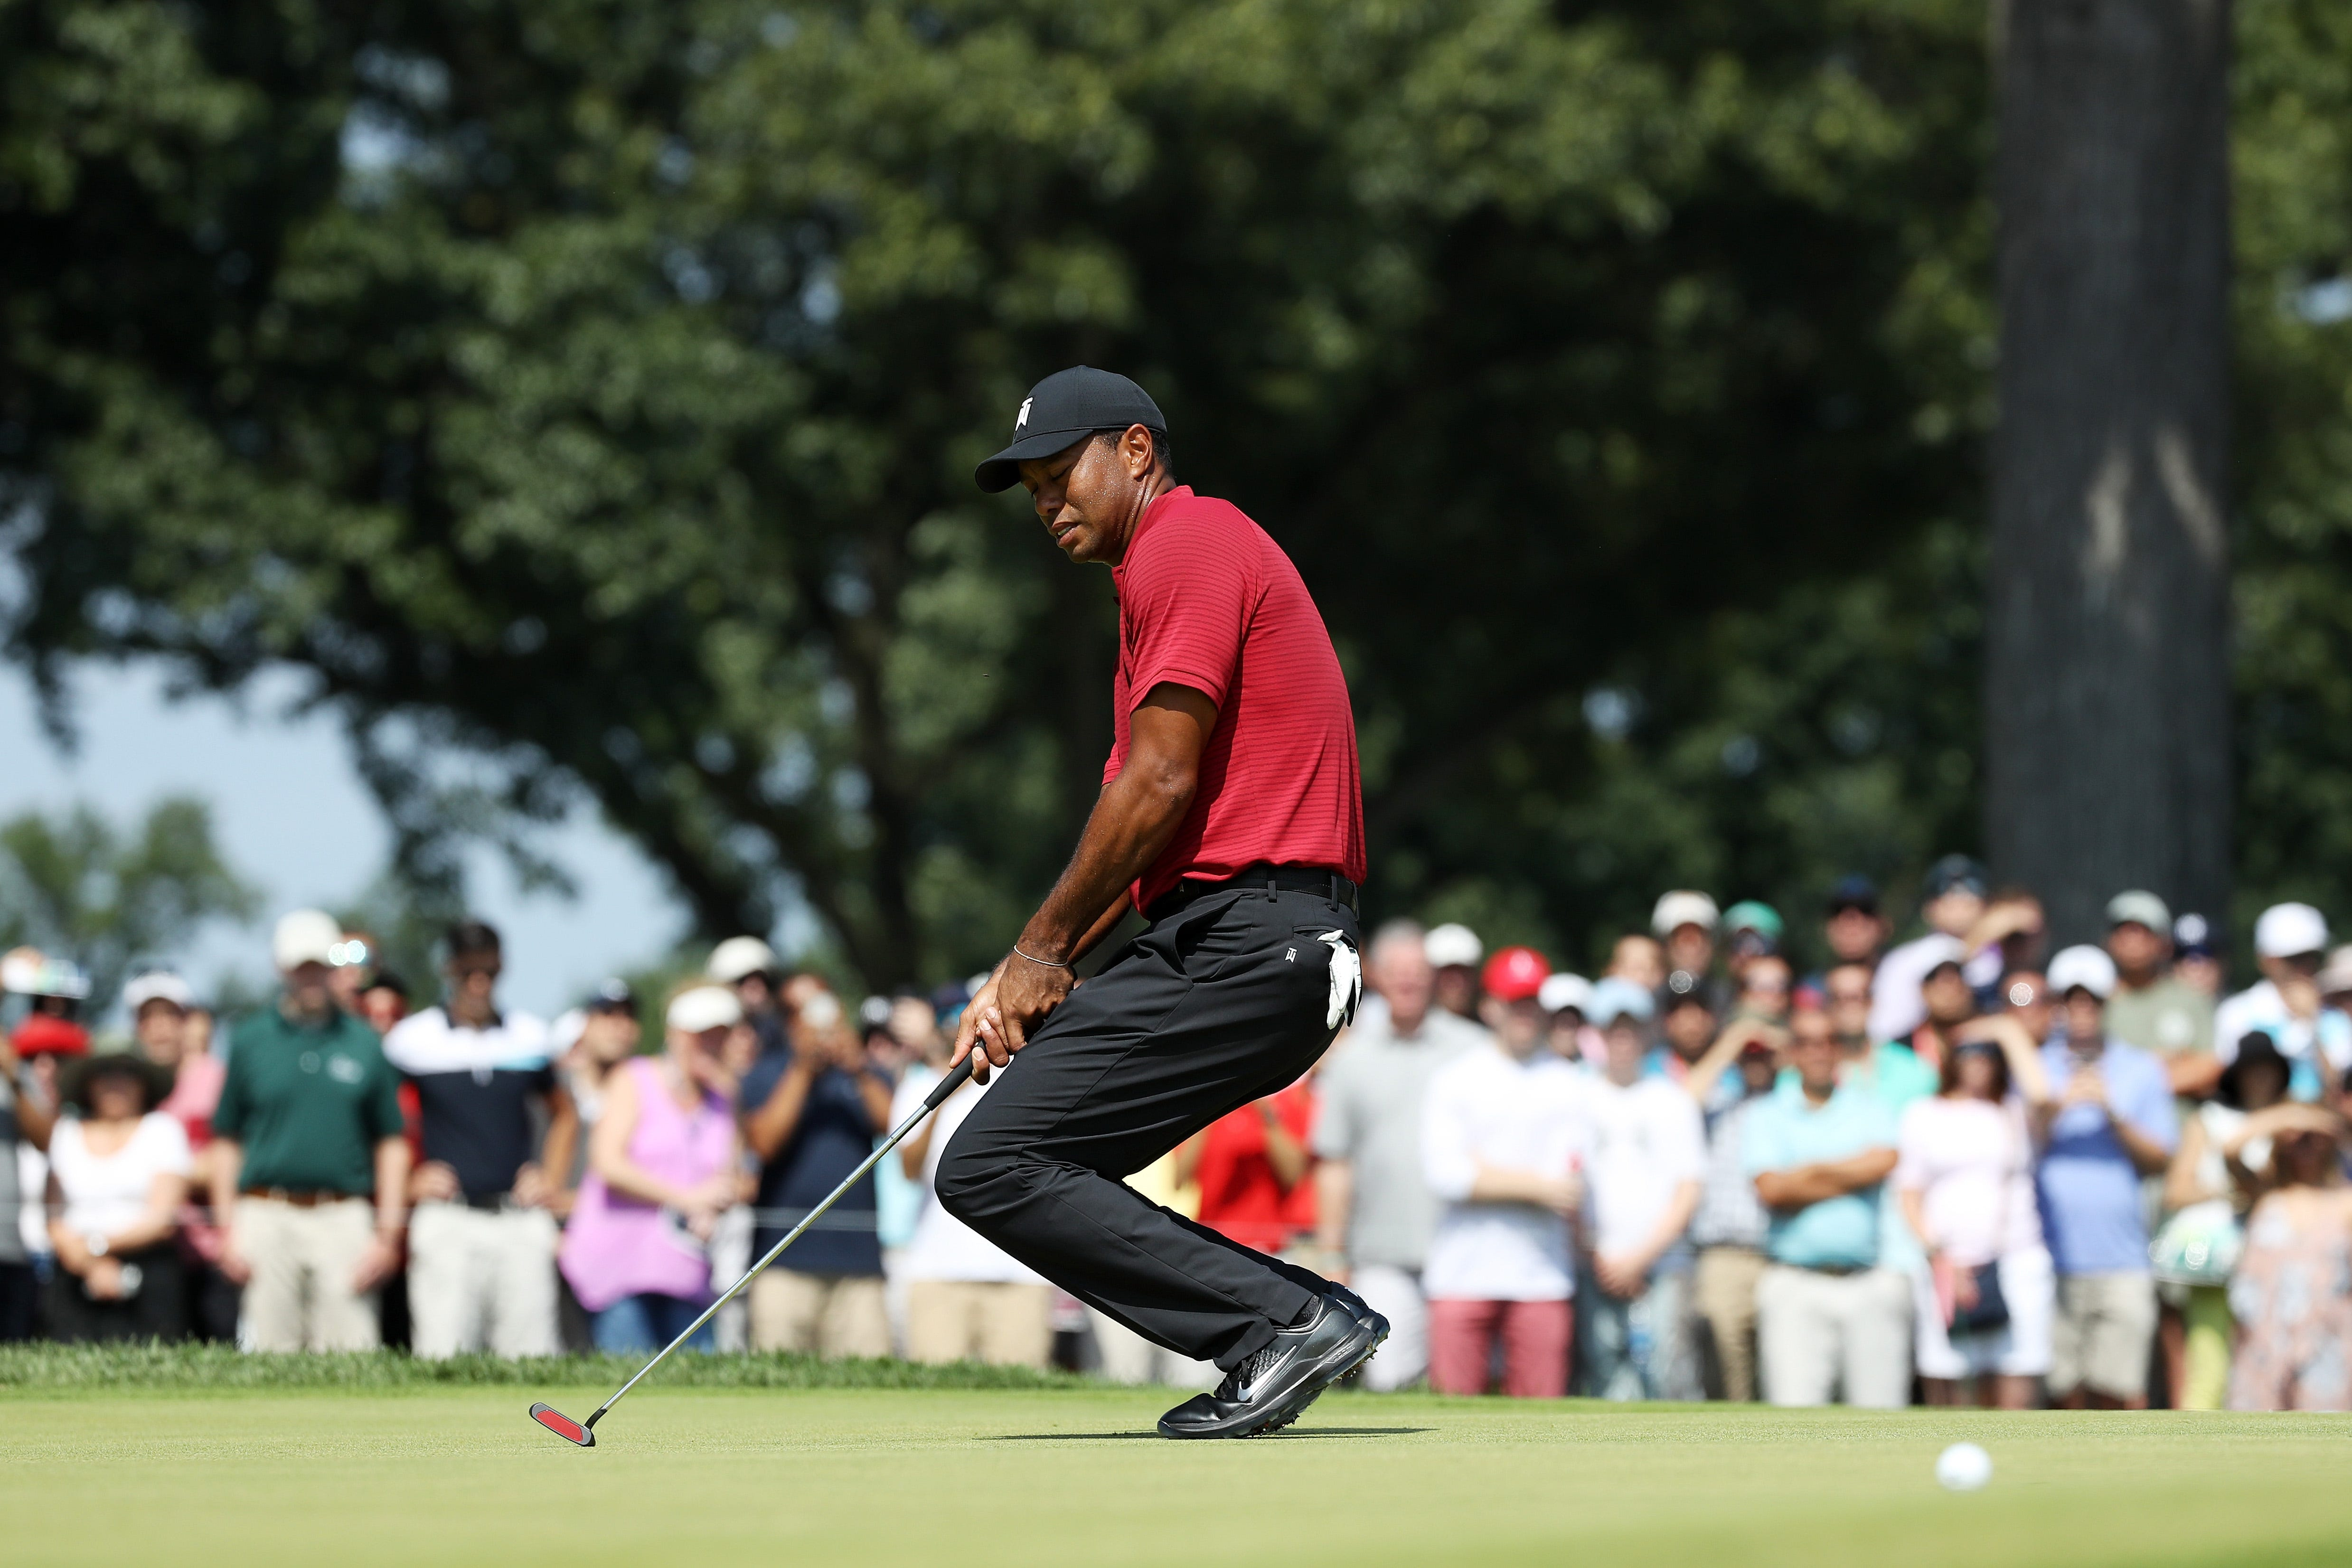 Putting woes continue to pummel Tiger Woods in Northern Trust